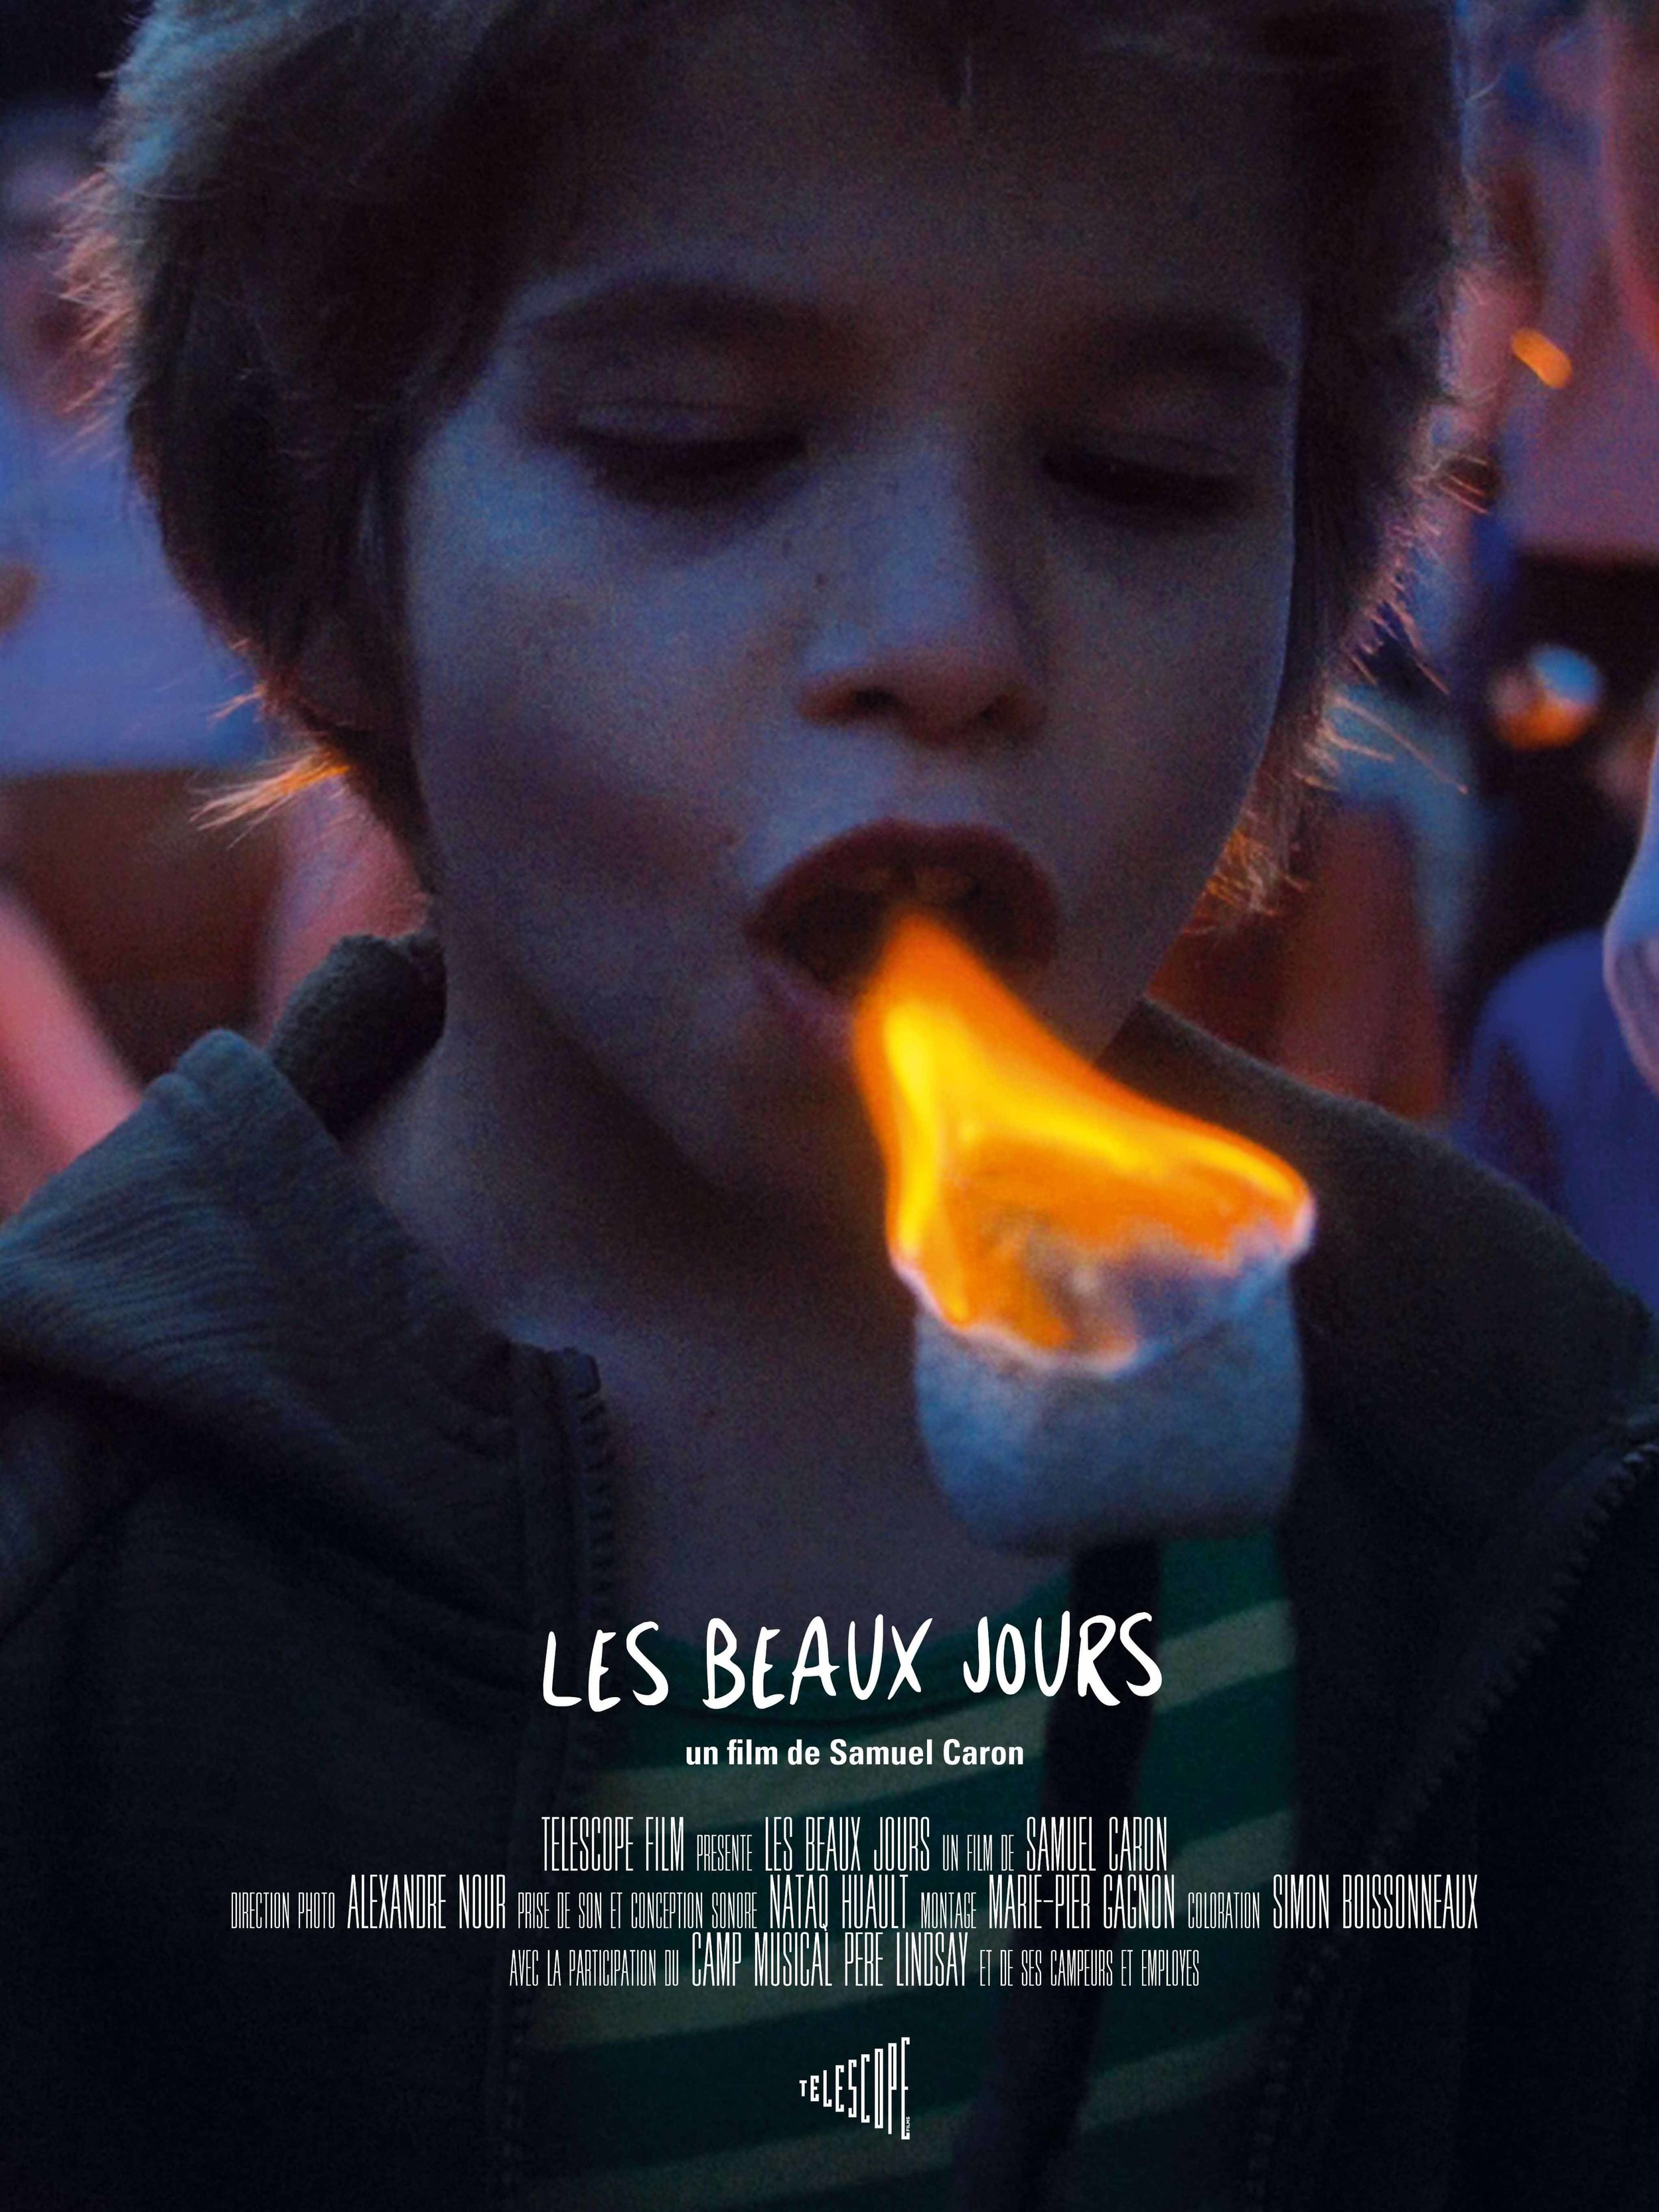 Les Beaux Jours (2017) - Documentary, MusicalSynopsisThrough the banal adventures and musical performances of the children in a musical camp in Lanaudière, Quebec, this series of contemplative frescoes offers a nostalgic view of a childhood bathed in sunlight and nature.Director : Samuel CaronProducteur : Samuel CaronCinematographer : Alexandre NourEditor : Marie-pier GrignonSound Designer : Nataq Hualt